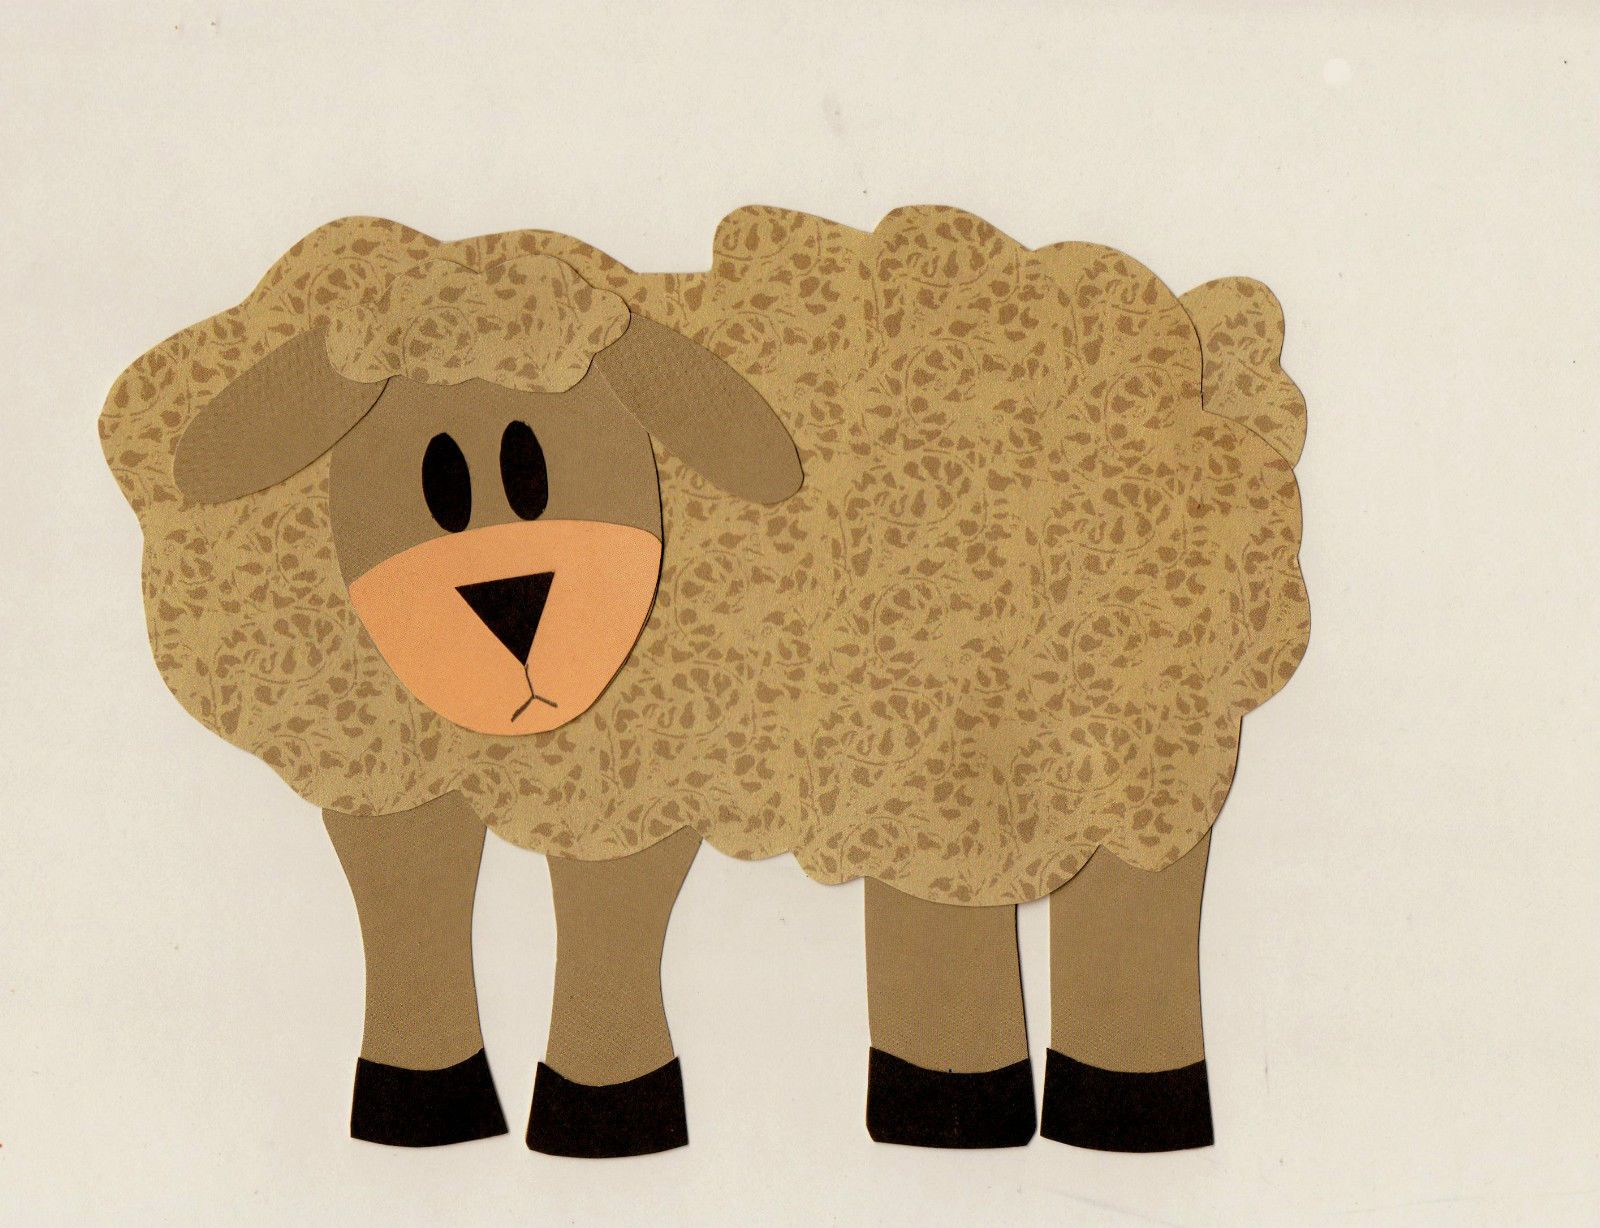 Quilt applique template pattern for farm animal sheep wall